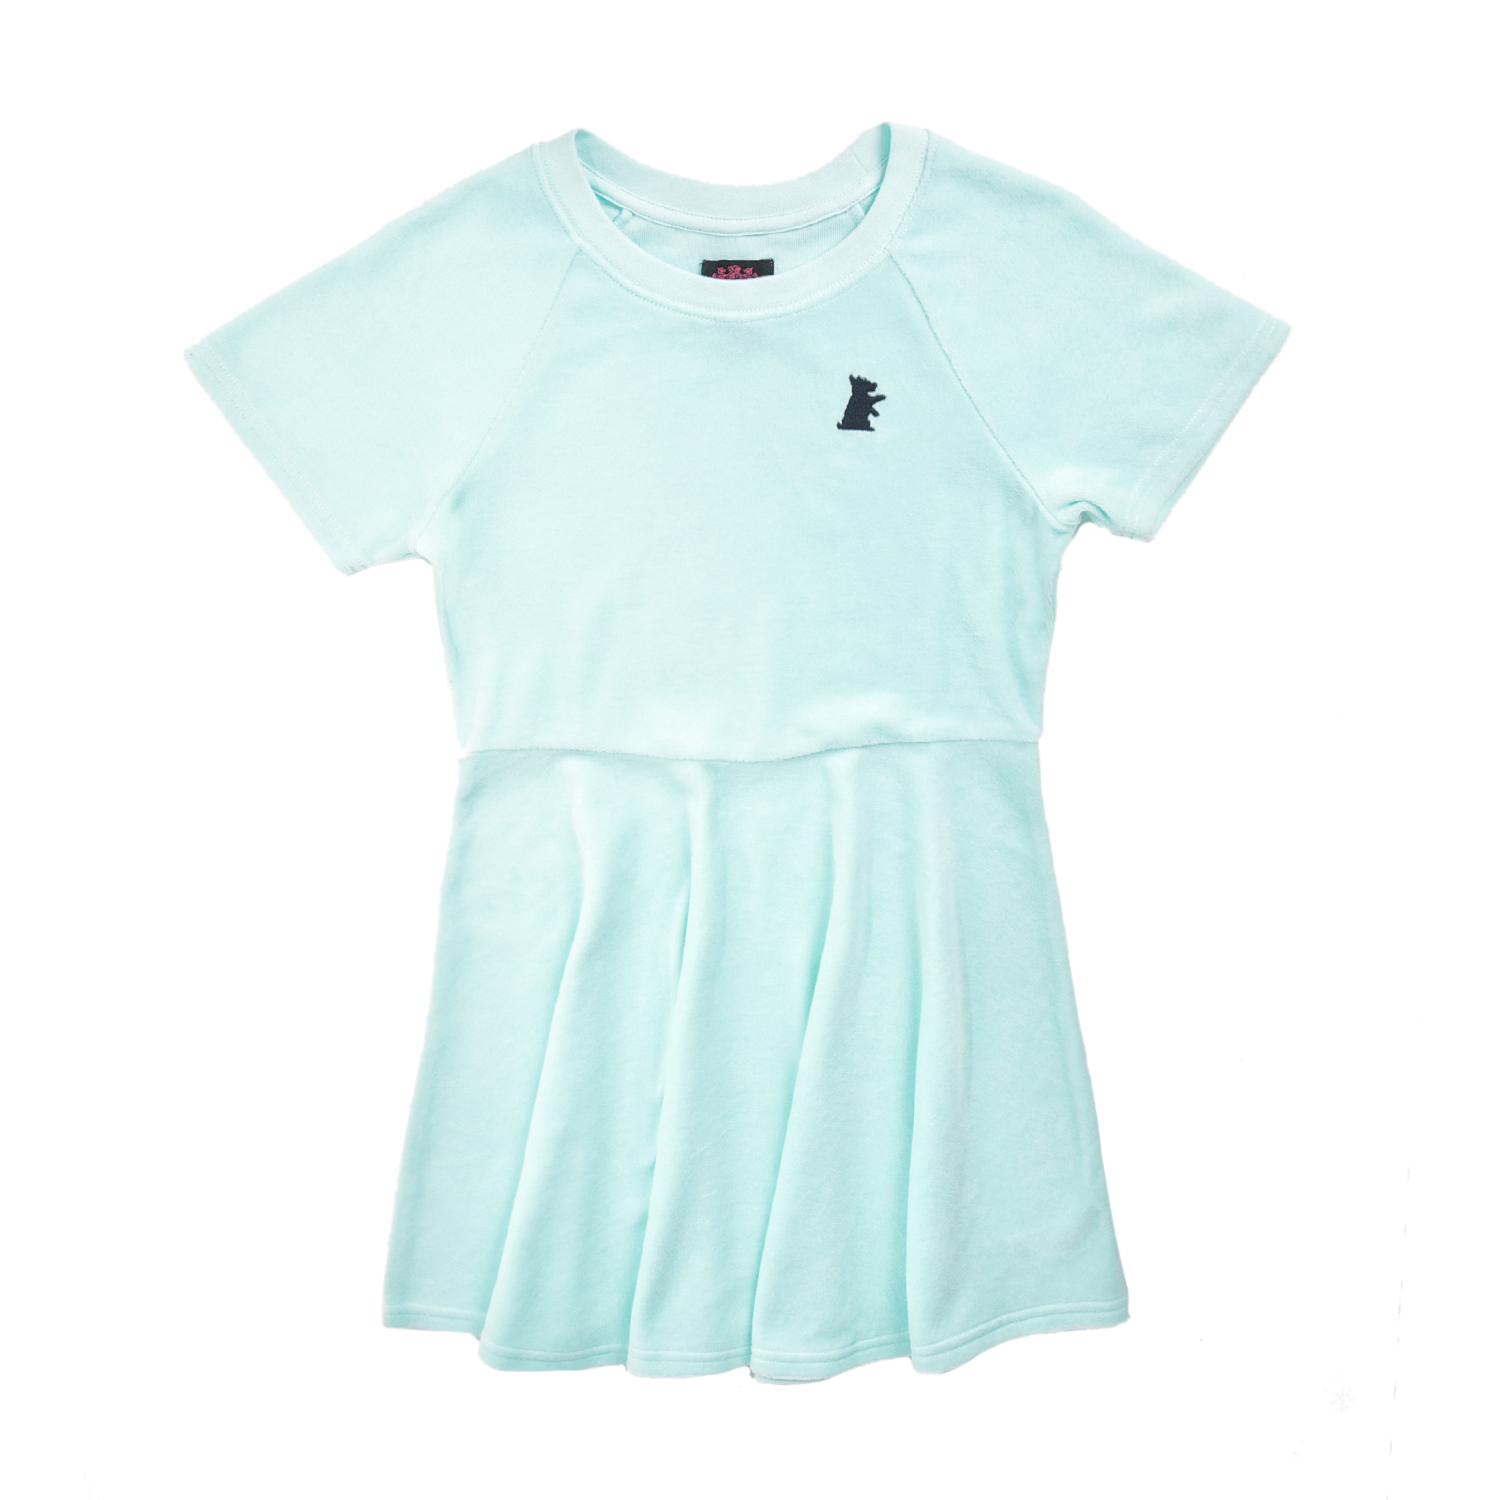 JUICY COUTURE KIDS - Κοριτσίστικο φόρεμα JUICY COUTURE SOLID VLR SKATER γαλάζιο παιδικά girls ρούχα φορέματα